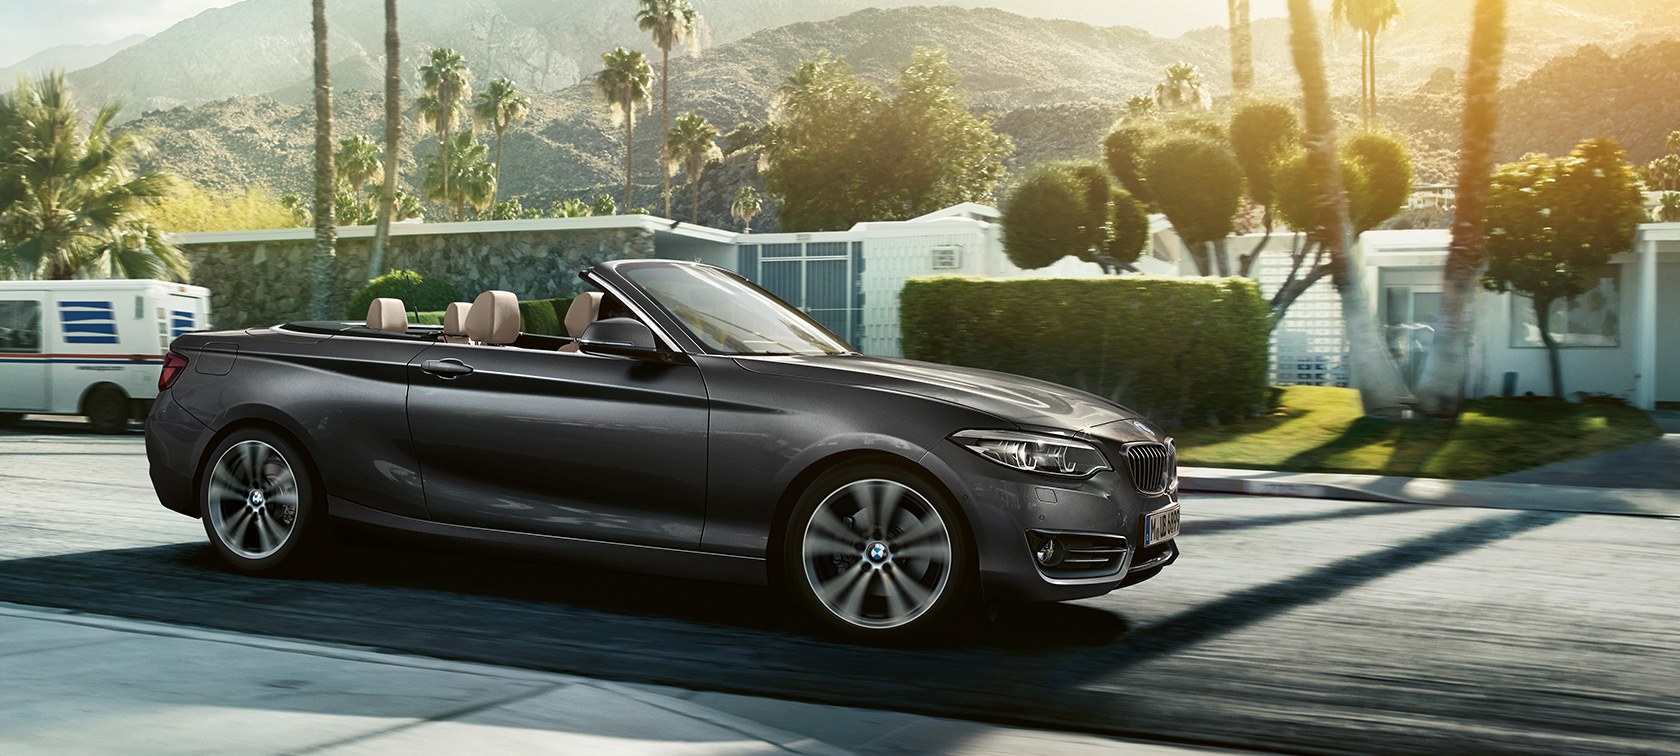 BMW 2 Series Convertible, technical data